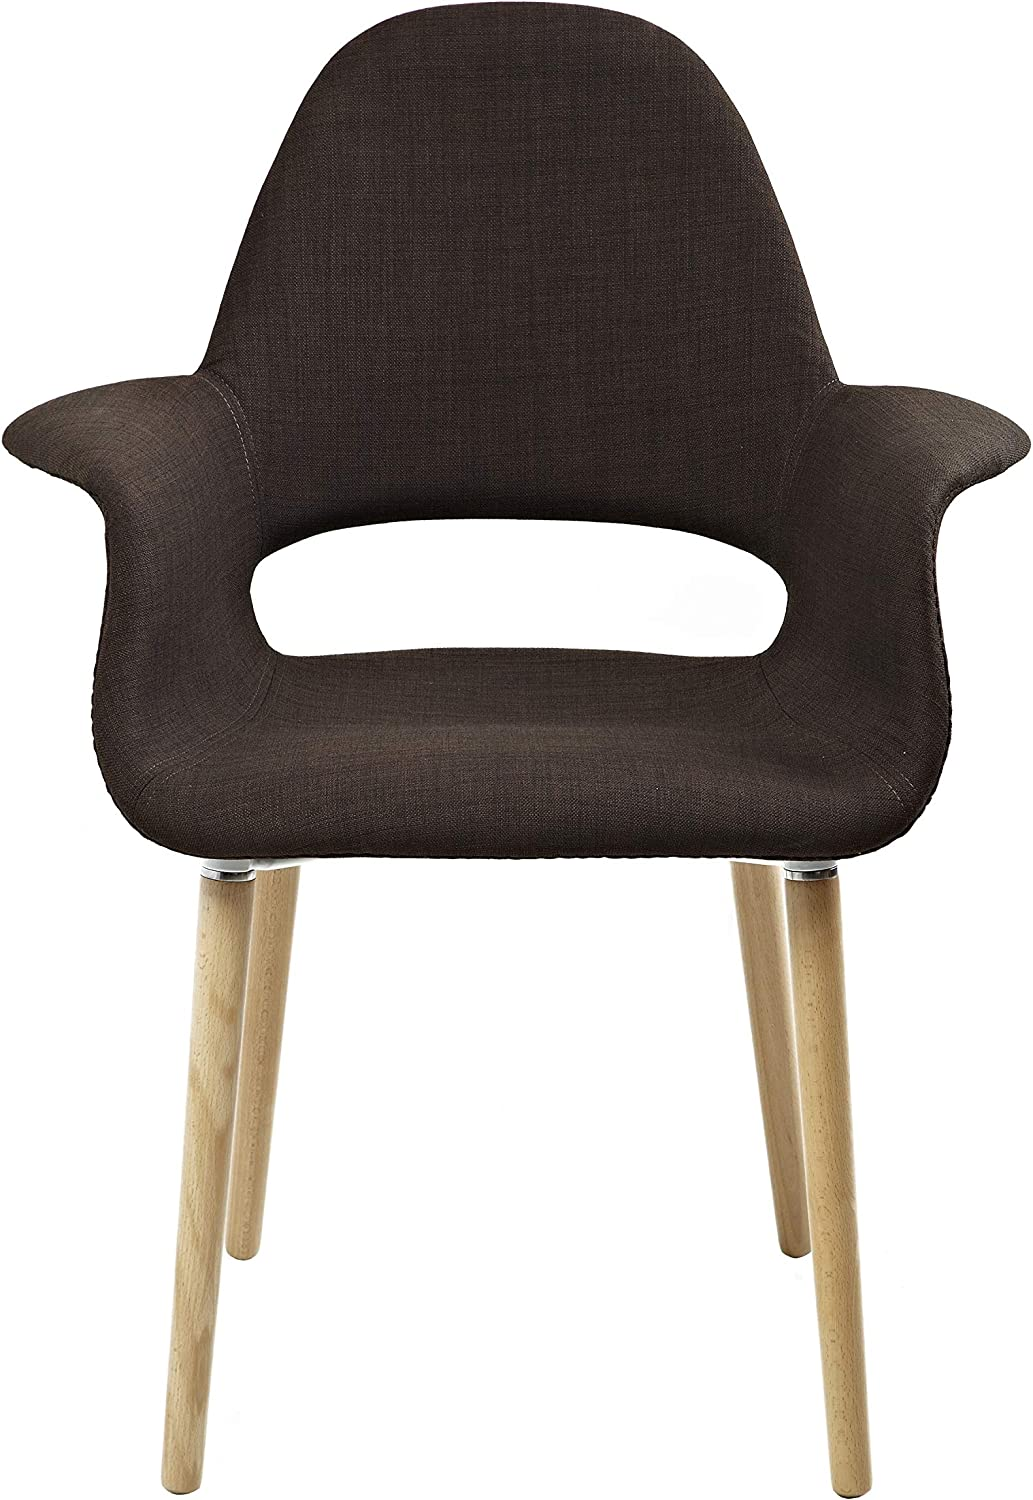 2xhome Upholstered Mid Century Modern Chair Arm quality Direct stock discount assurance Natu with Dining